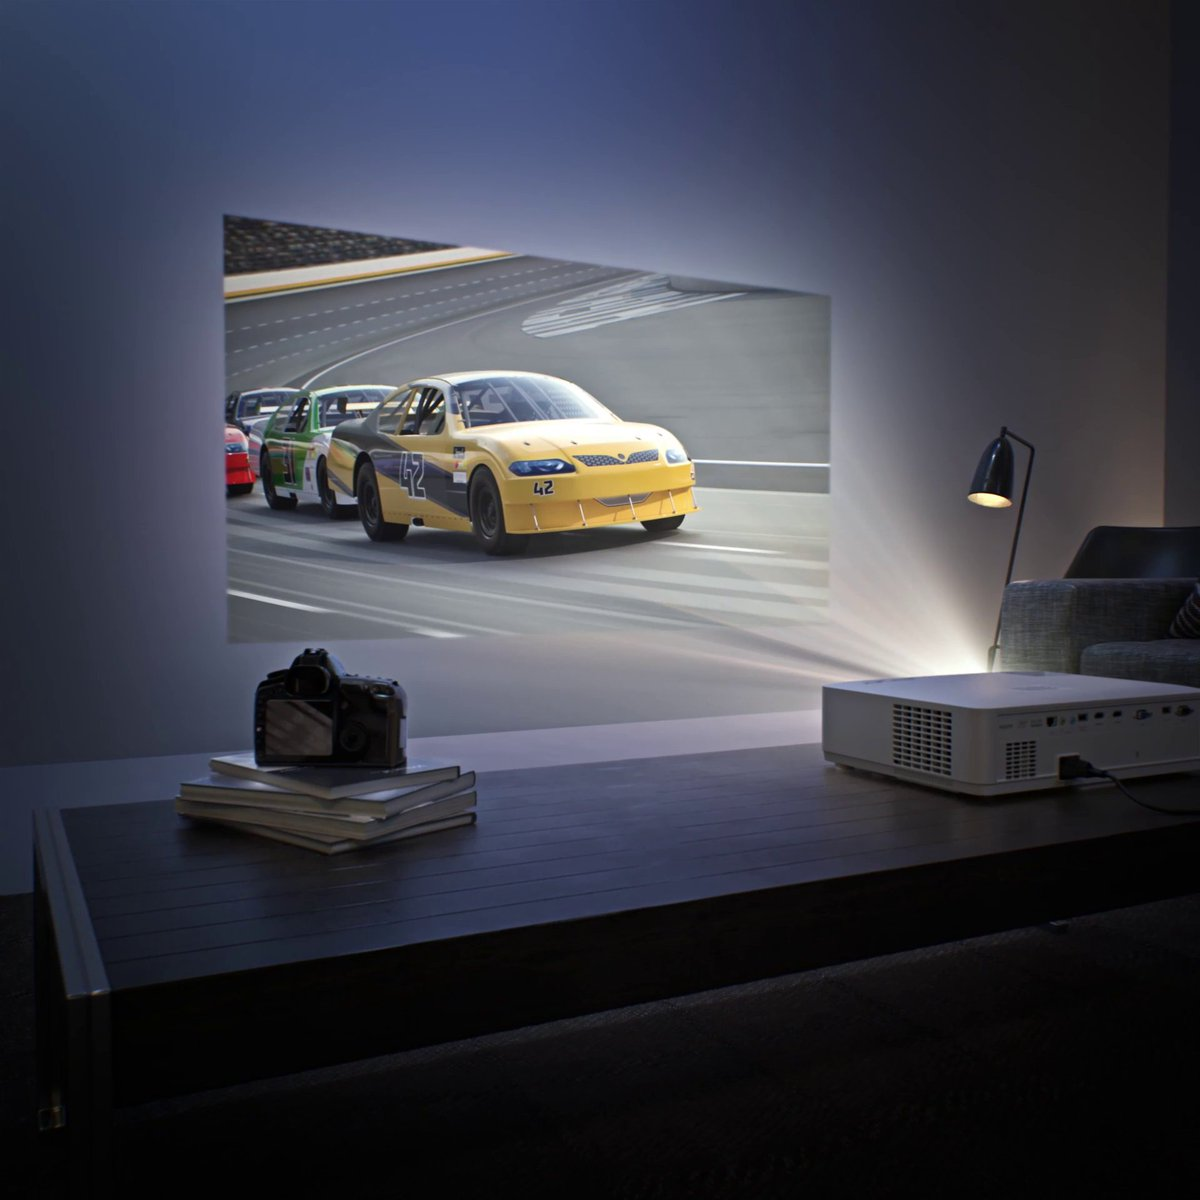 Bring an impressive element to your home and work with the #Acer PD and VD series projectors, the world's first wireless LED project lines to feature 3,000 ANSI lumen brightness at FHD resolution: https://t.co/PeilKez2C0 https://t.co/OJGAjx69TP